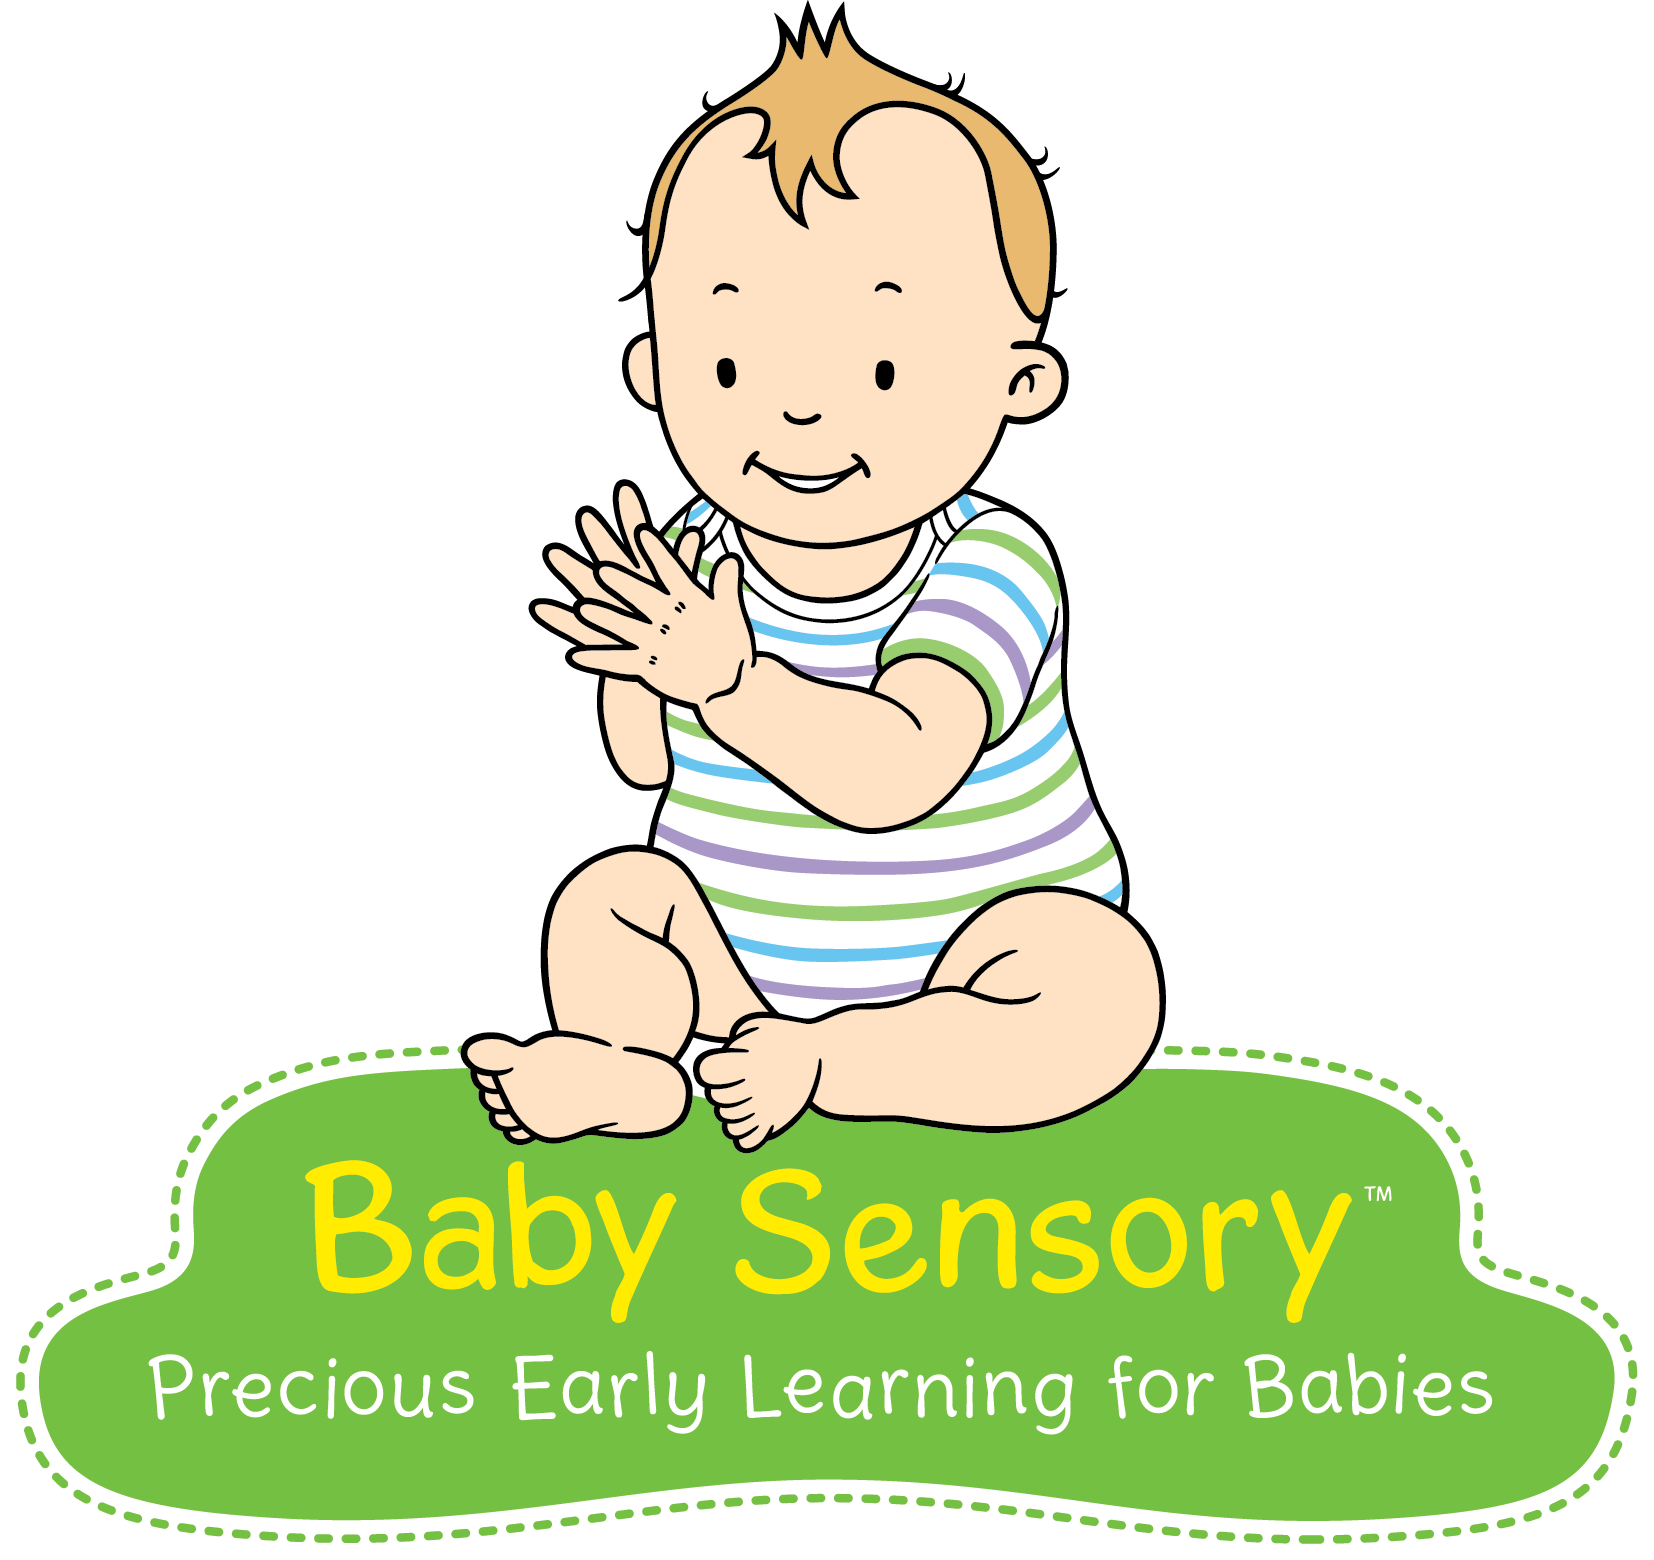 Taste clipart sensory detail. Weekly classes playgroups special